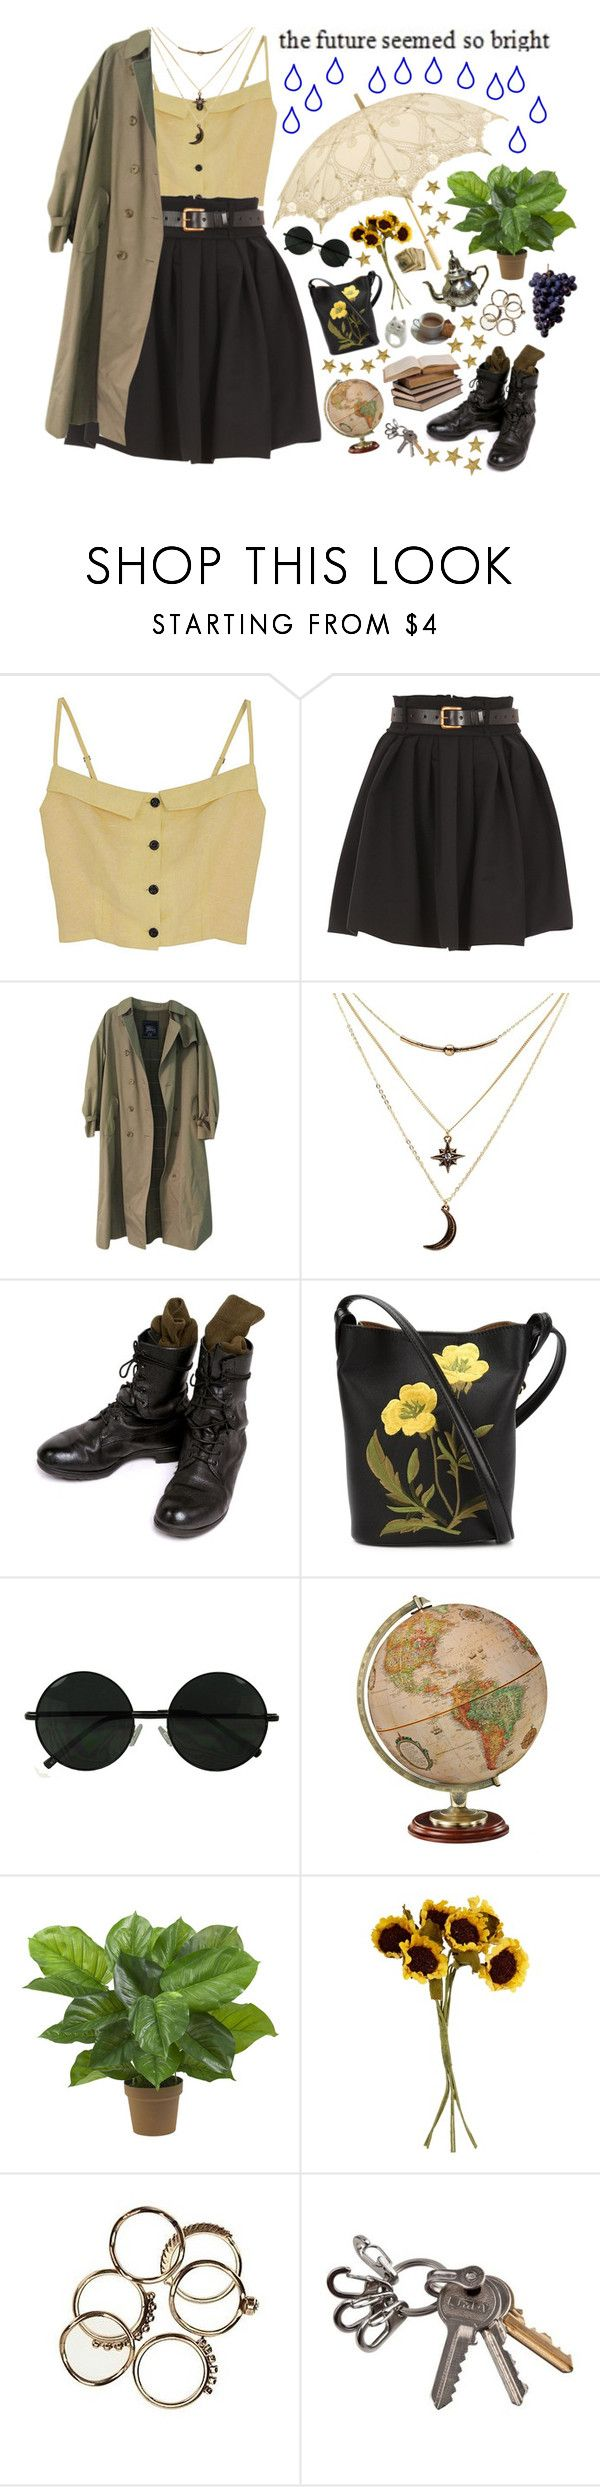 """""""Lissoms (tag)"""" by purpleghost ❤ liked on Polyvore featuring Preen, Burberry, Charlotte Russe, MOSAIK, STELLA McCARTNEY, Nearly Natural, John Lewis and living room"""